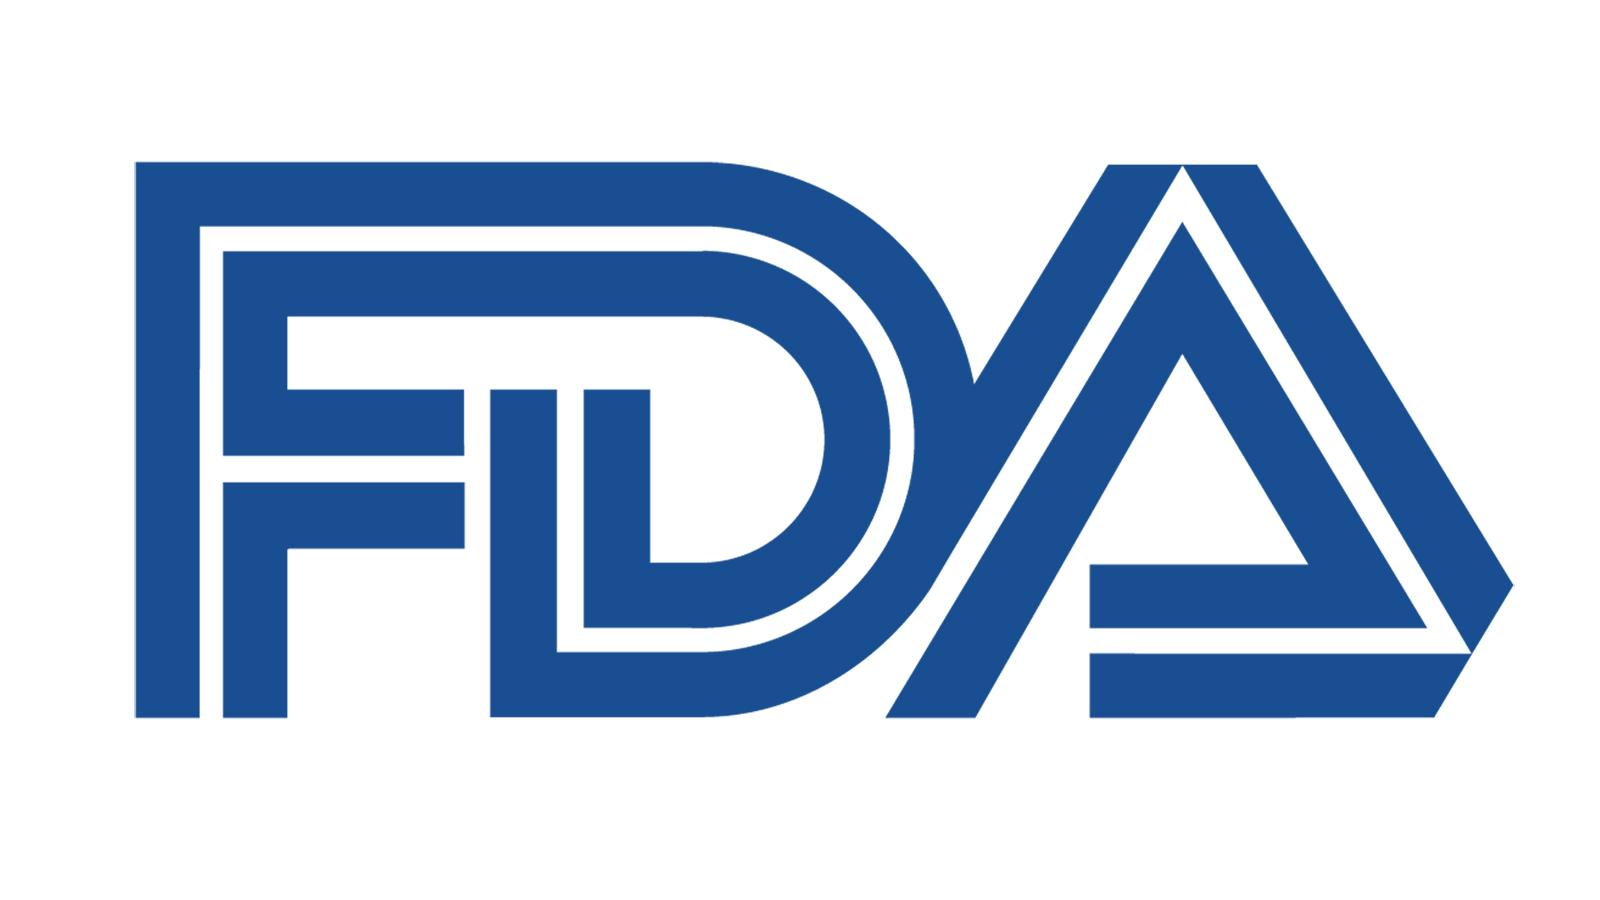 Bill Amendment To Change FDA Predicate Date Passes